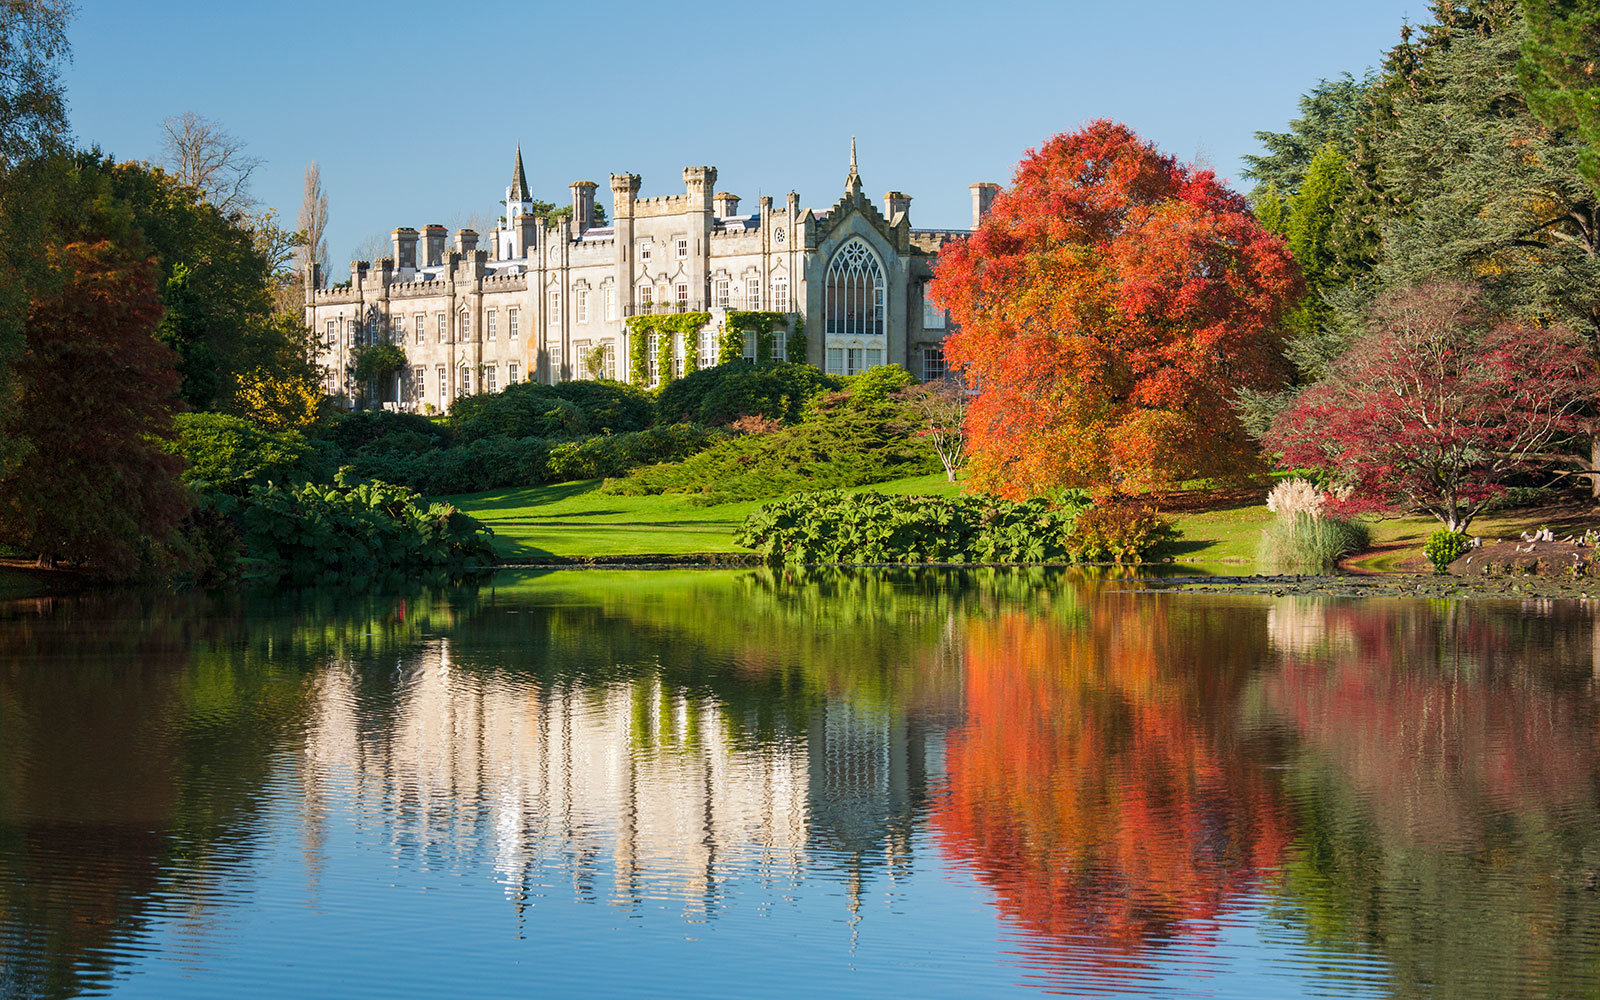 Sheffield Park House and Garden